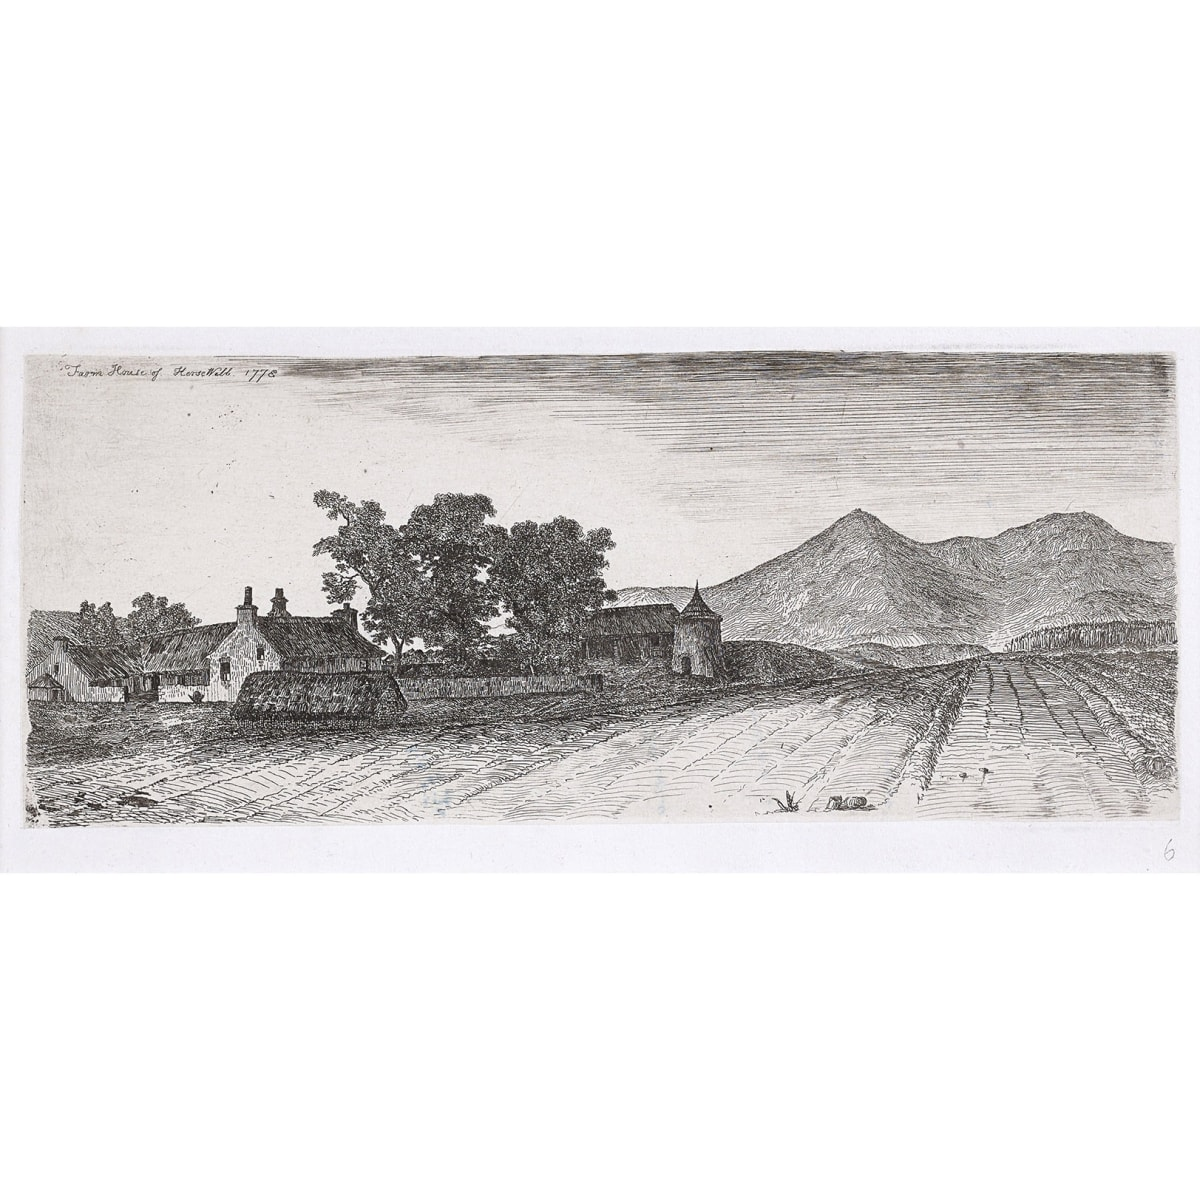 John Clerk of Eldin Farm of Kersewell, 1773 titled and dated 1773 (the '3' reversed) etching and drypoint 4 x 9 3/4 inches second state